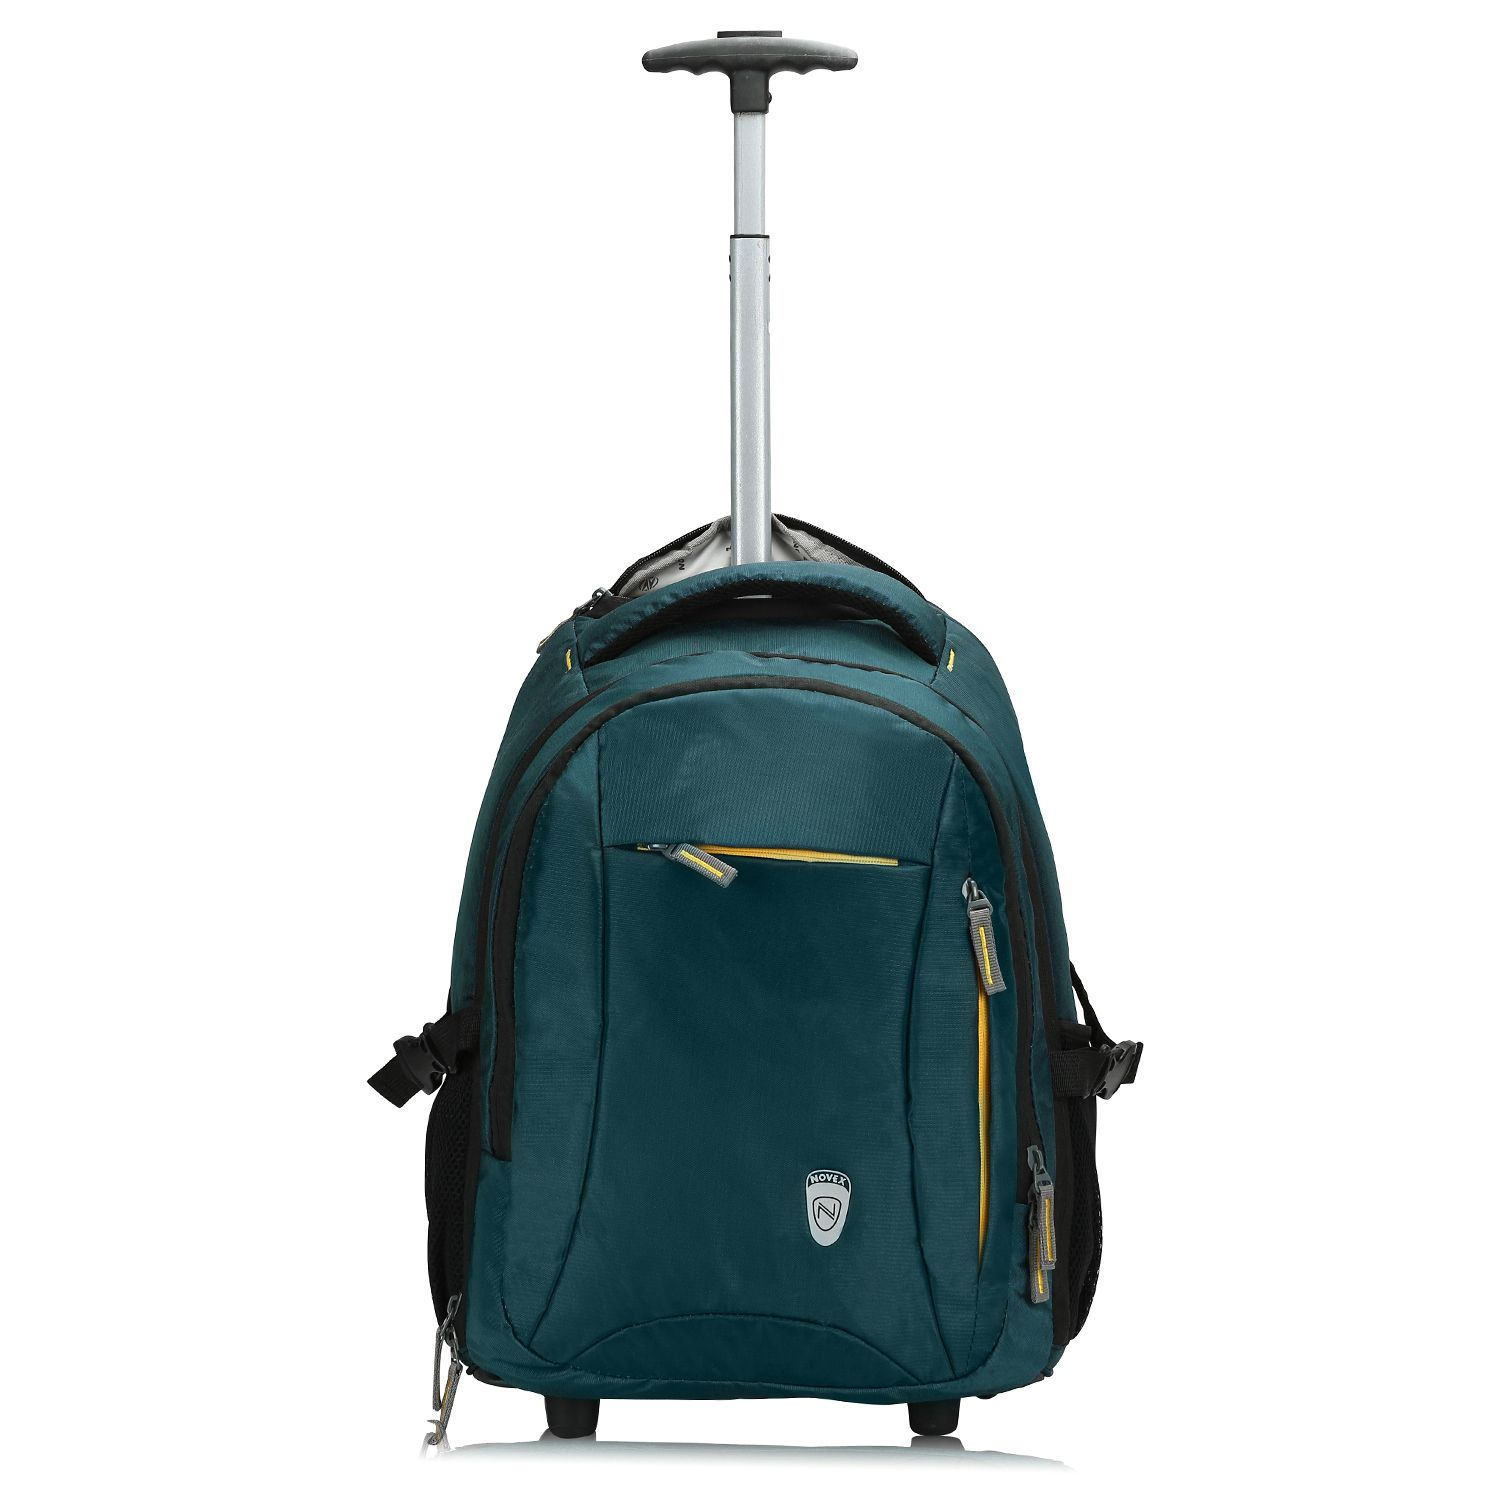 ba4025a1347 Novex Blue Polyester Trolley Backpack - Buy Novex Blue Polyester Trolley  Backpack Online at Low Price - Snapdeal